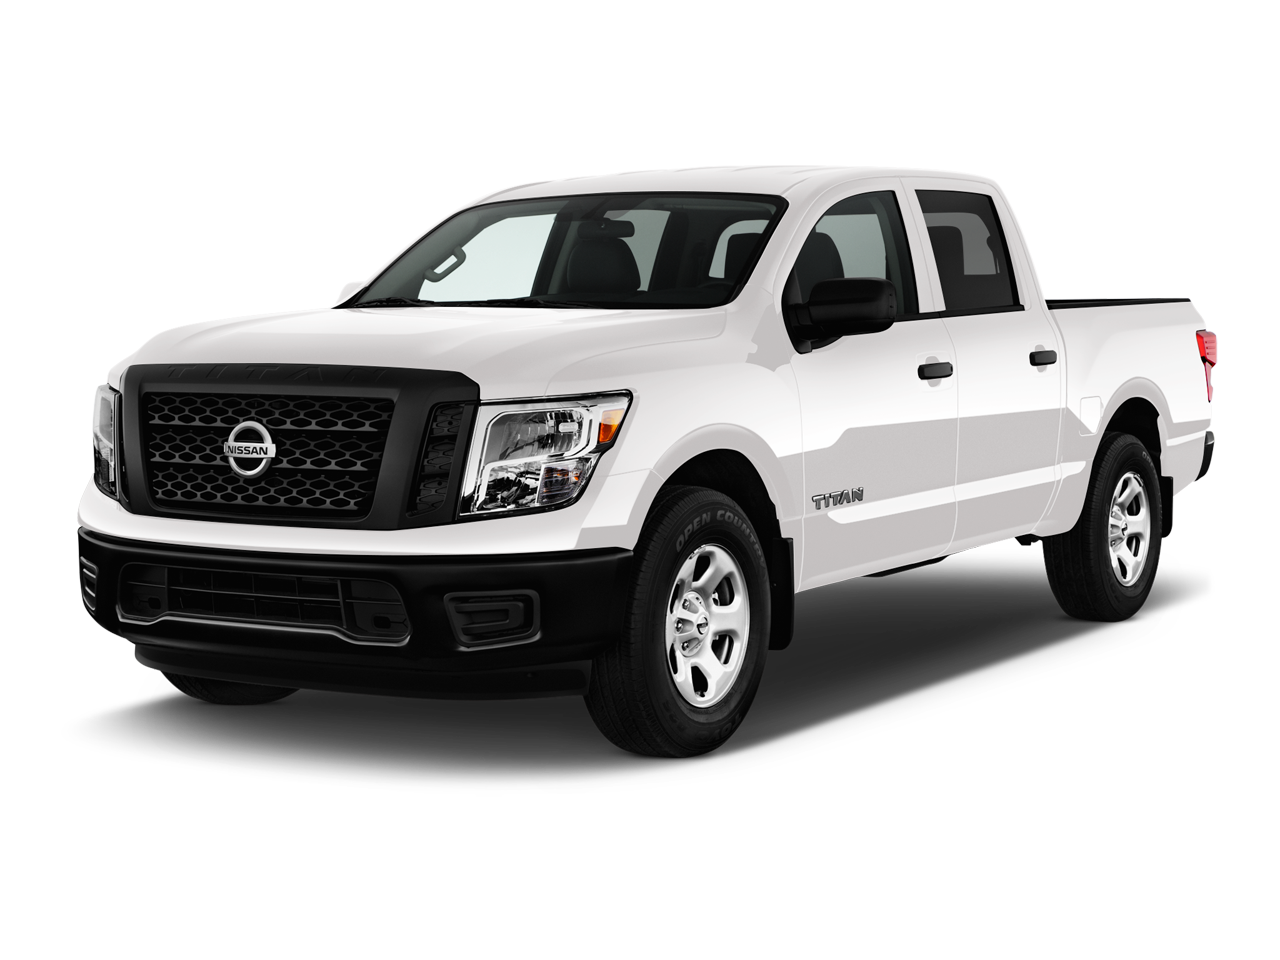 Nissan Of Elk Grove >> Nissan Dealer Elk Grove Ca New Used Cars For Sale Near | Autos Post